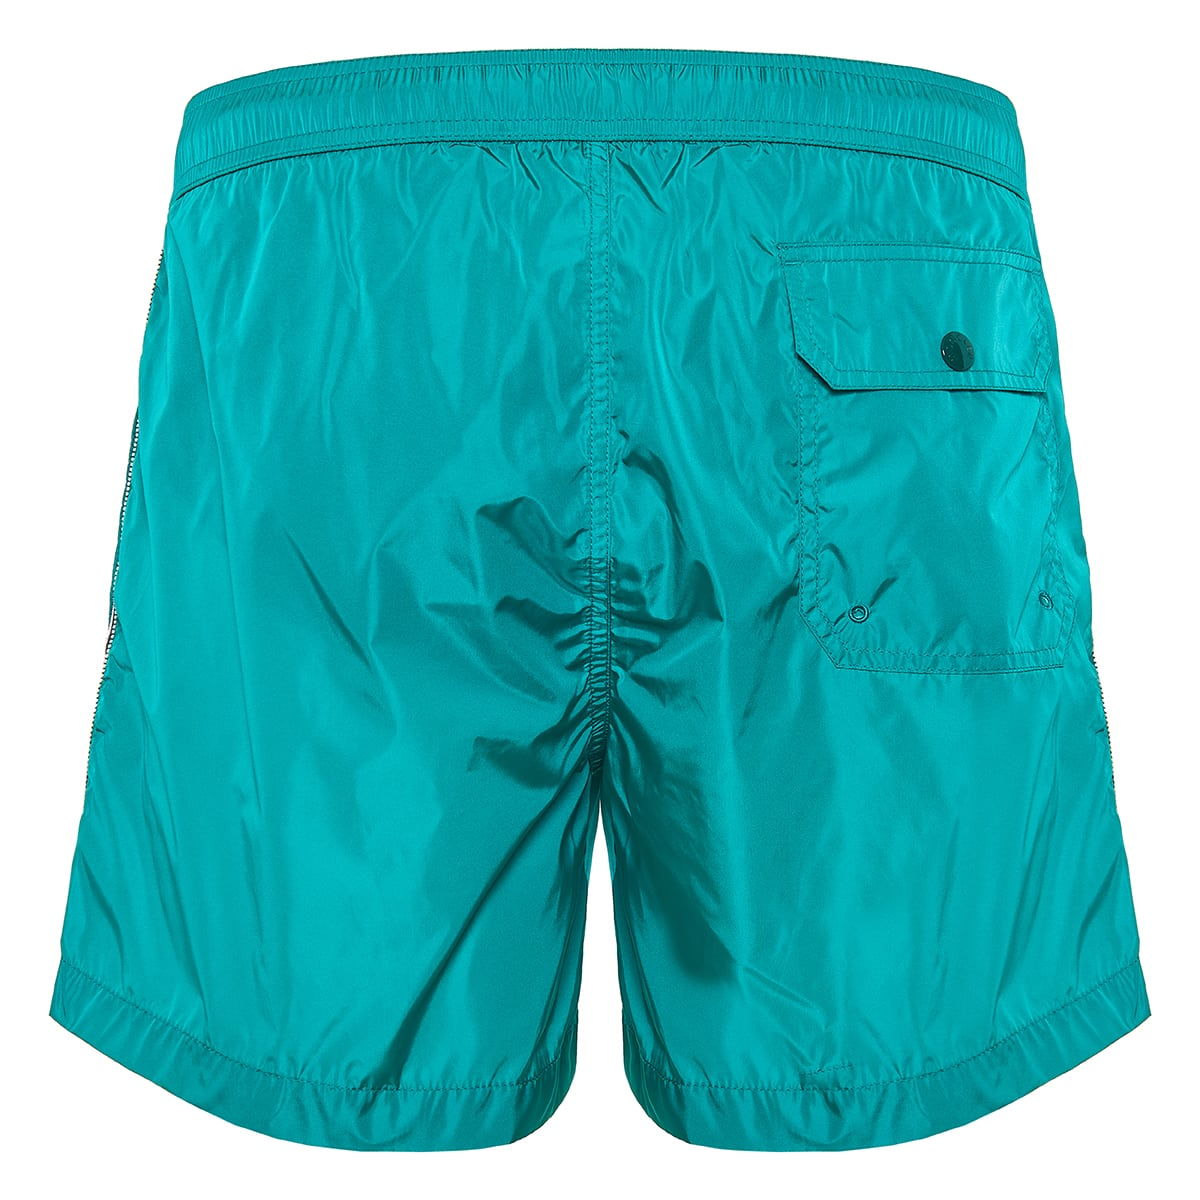 Side-striped swim shorts